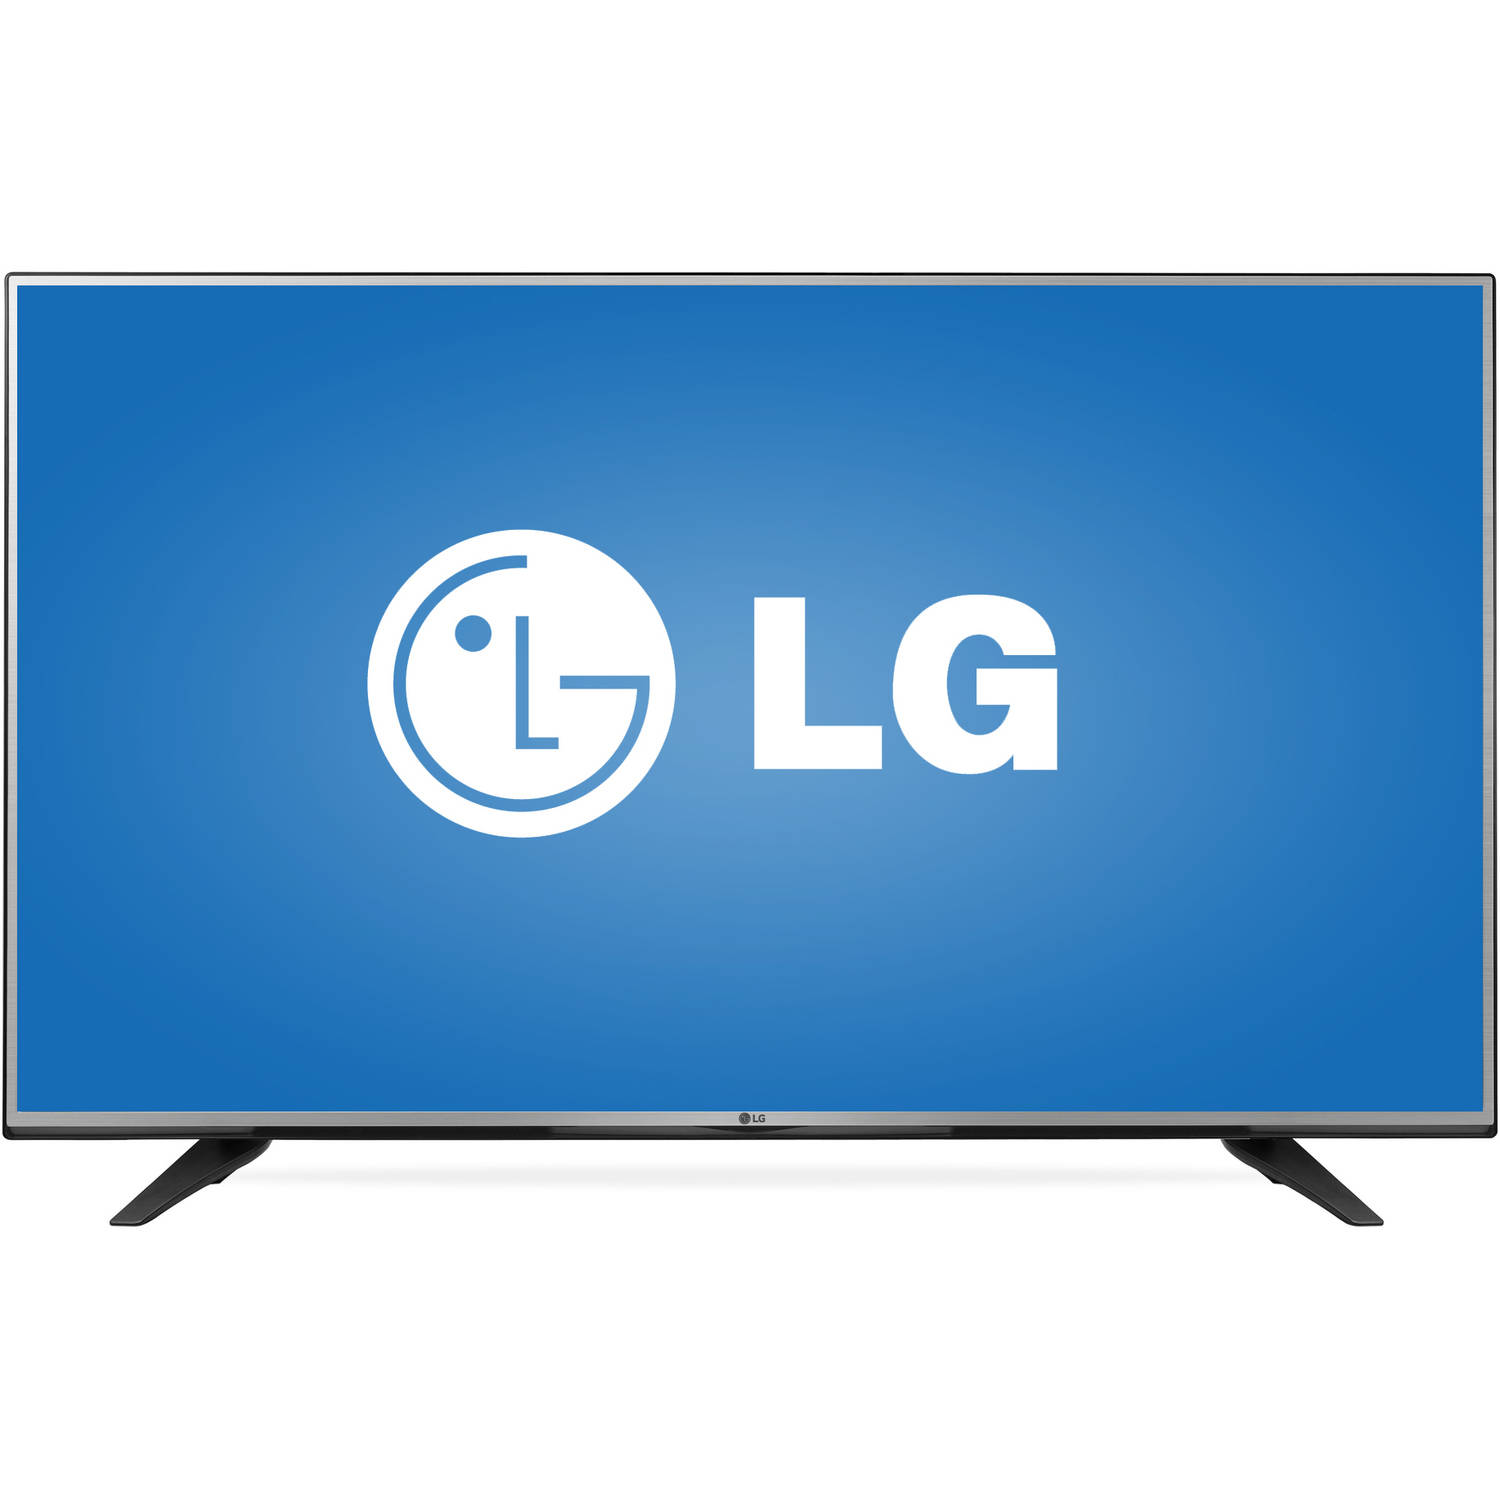 "LG 55UH6090 55"" 4K Ultra HD 2160p 120Hz LED Smart HDTV (4K x 2K)"